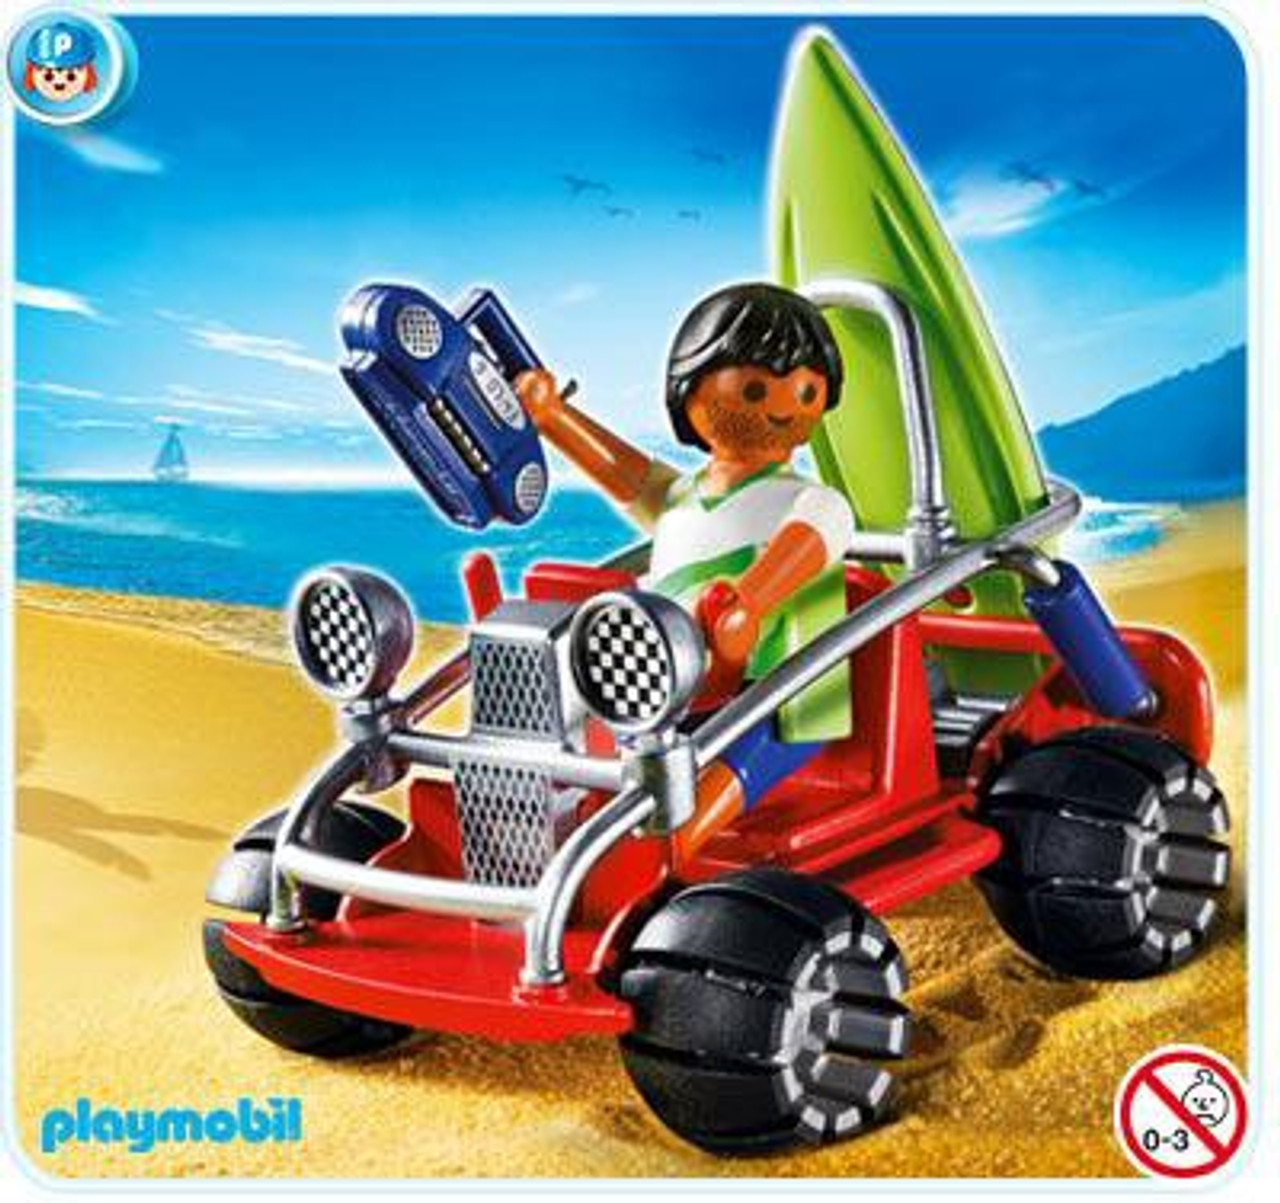 Playmobil Vacation & Leisure Beach Buggy Set #4863